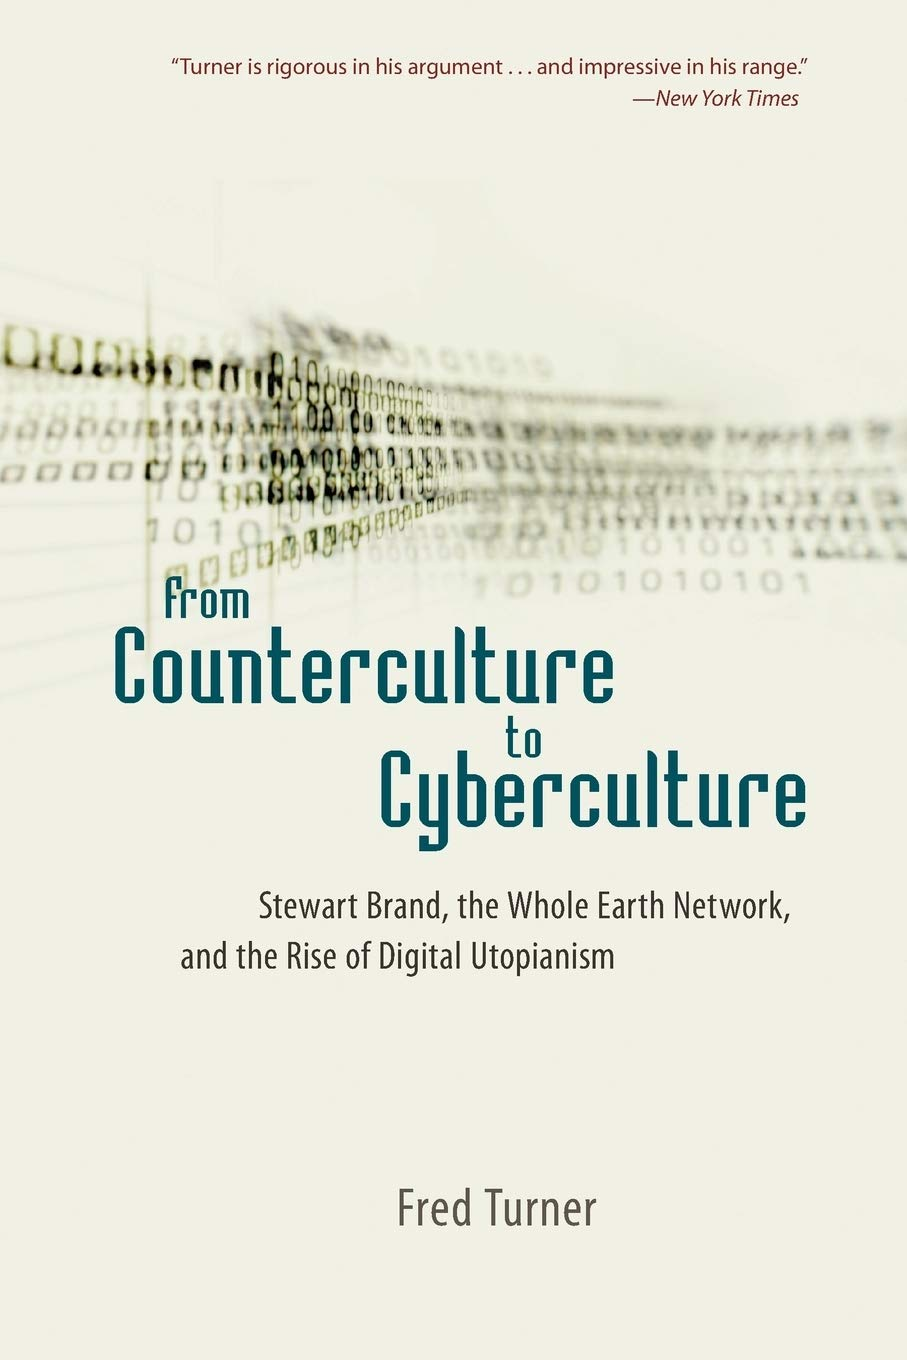 From Counterculture to Cyberculture: Stewart Brand, the Whole Earth Network,  and the Rise of Digital Utopianism: Amazon.co.uk: Turner, Fred:  9780226817422: Books